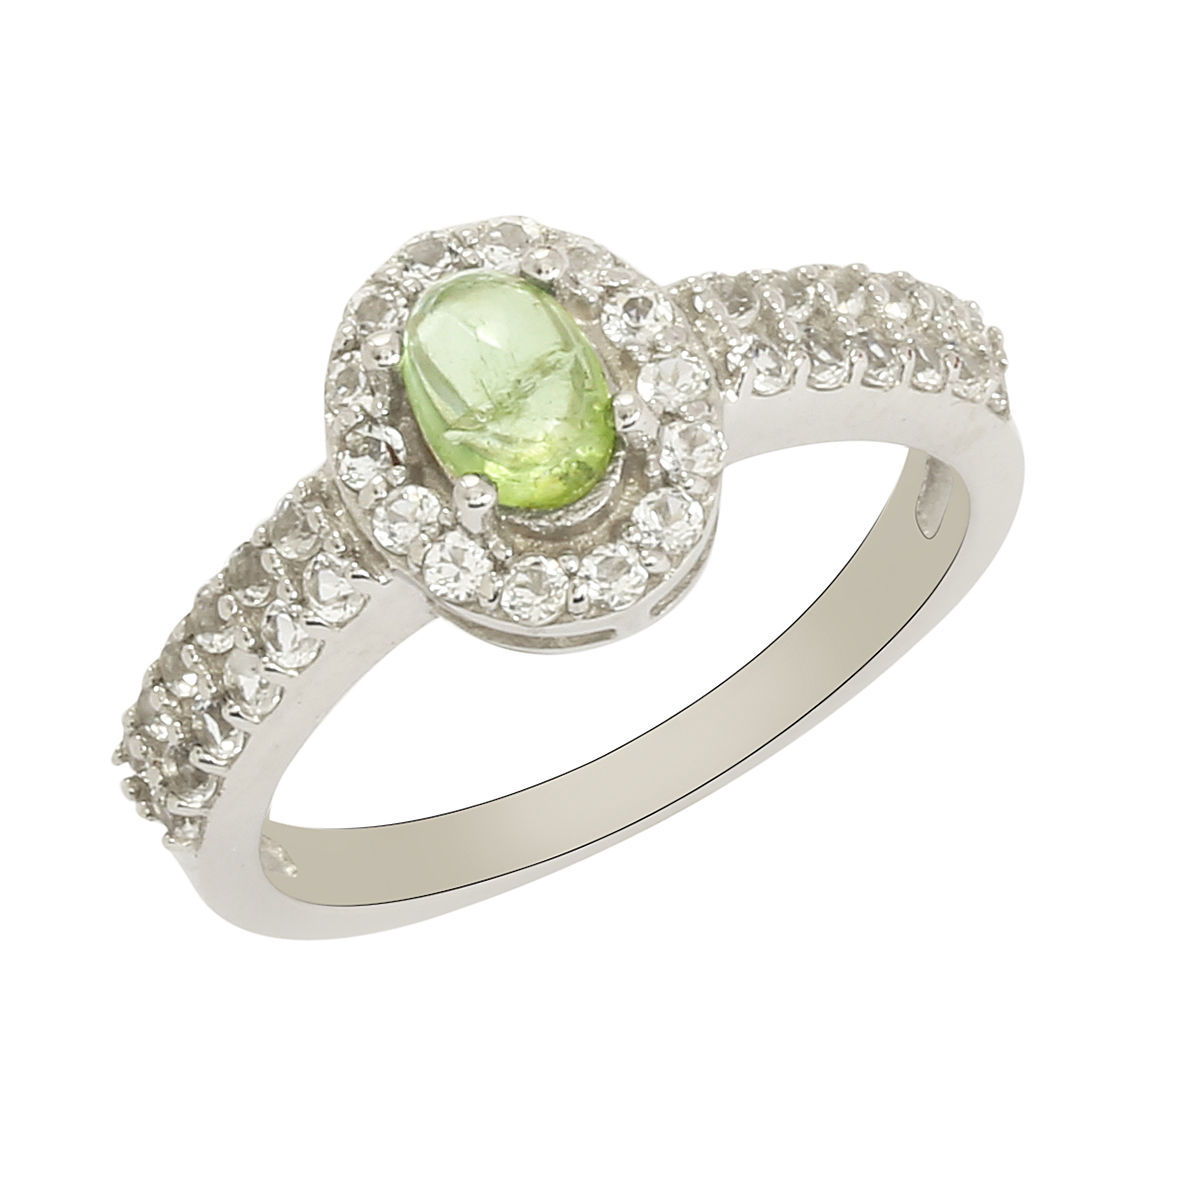 White Topaz n Tourmaline Solid 925 Sterling Silver Jewelry Ring Size 7 SHRI0212